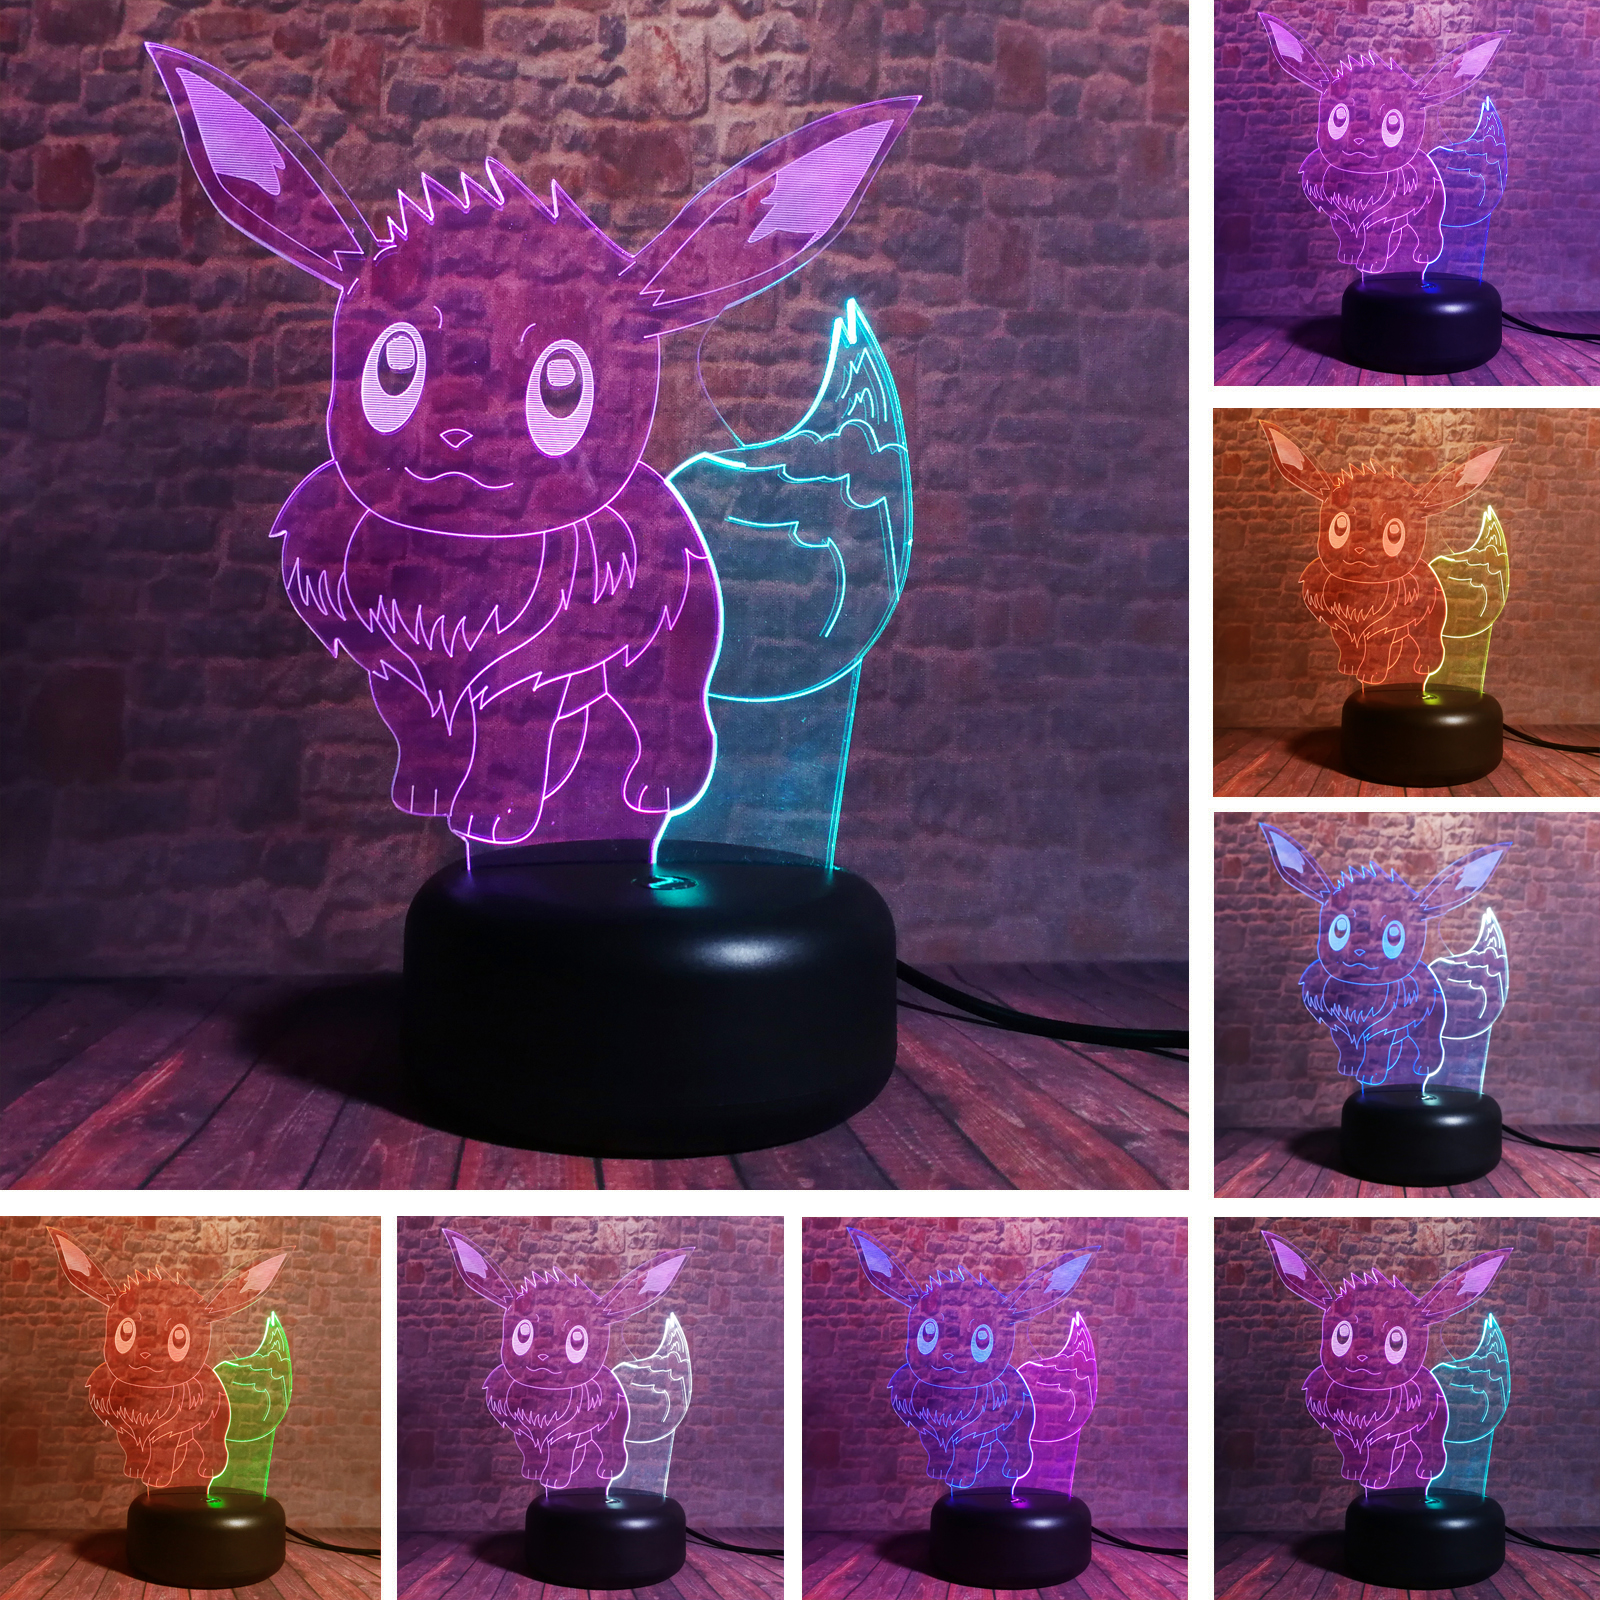 New Pokemon Go Game Monster 3D Eevee Action Dual-Mix-7-Color Chnage Auto Night Light Decor Lamp Child Kid Birthday Xmas Gifts